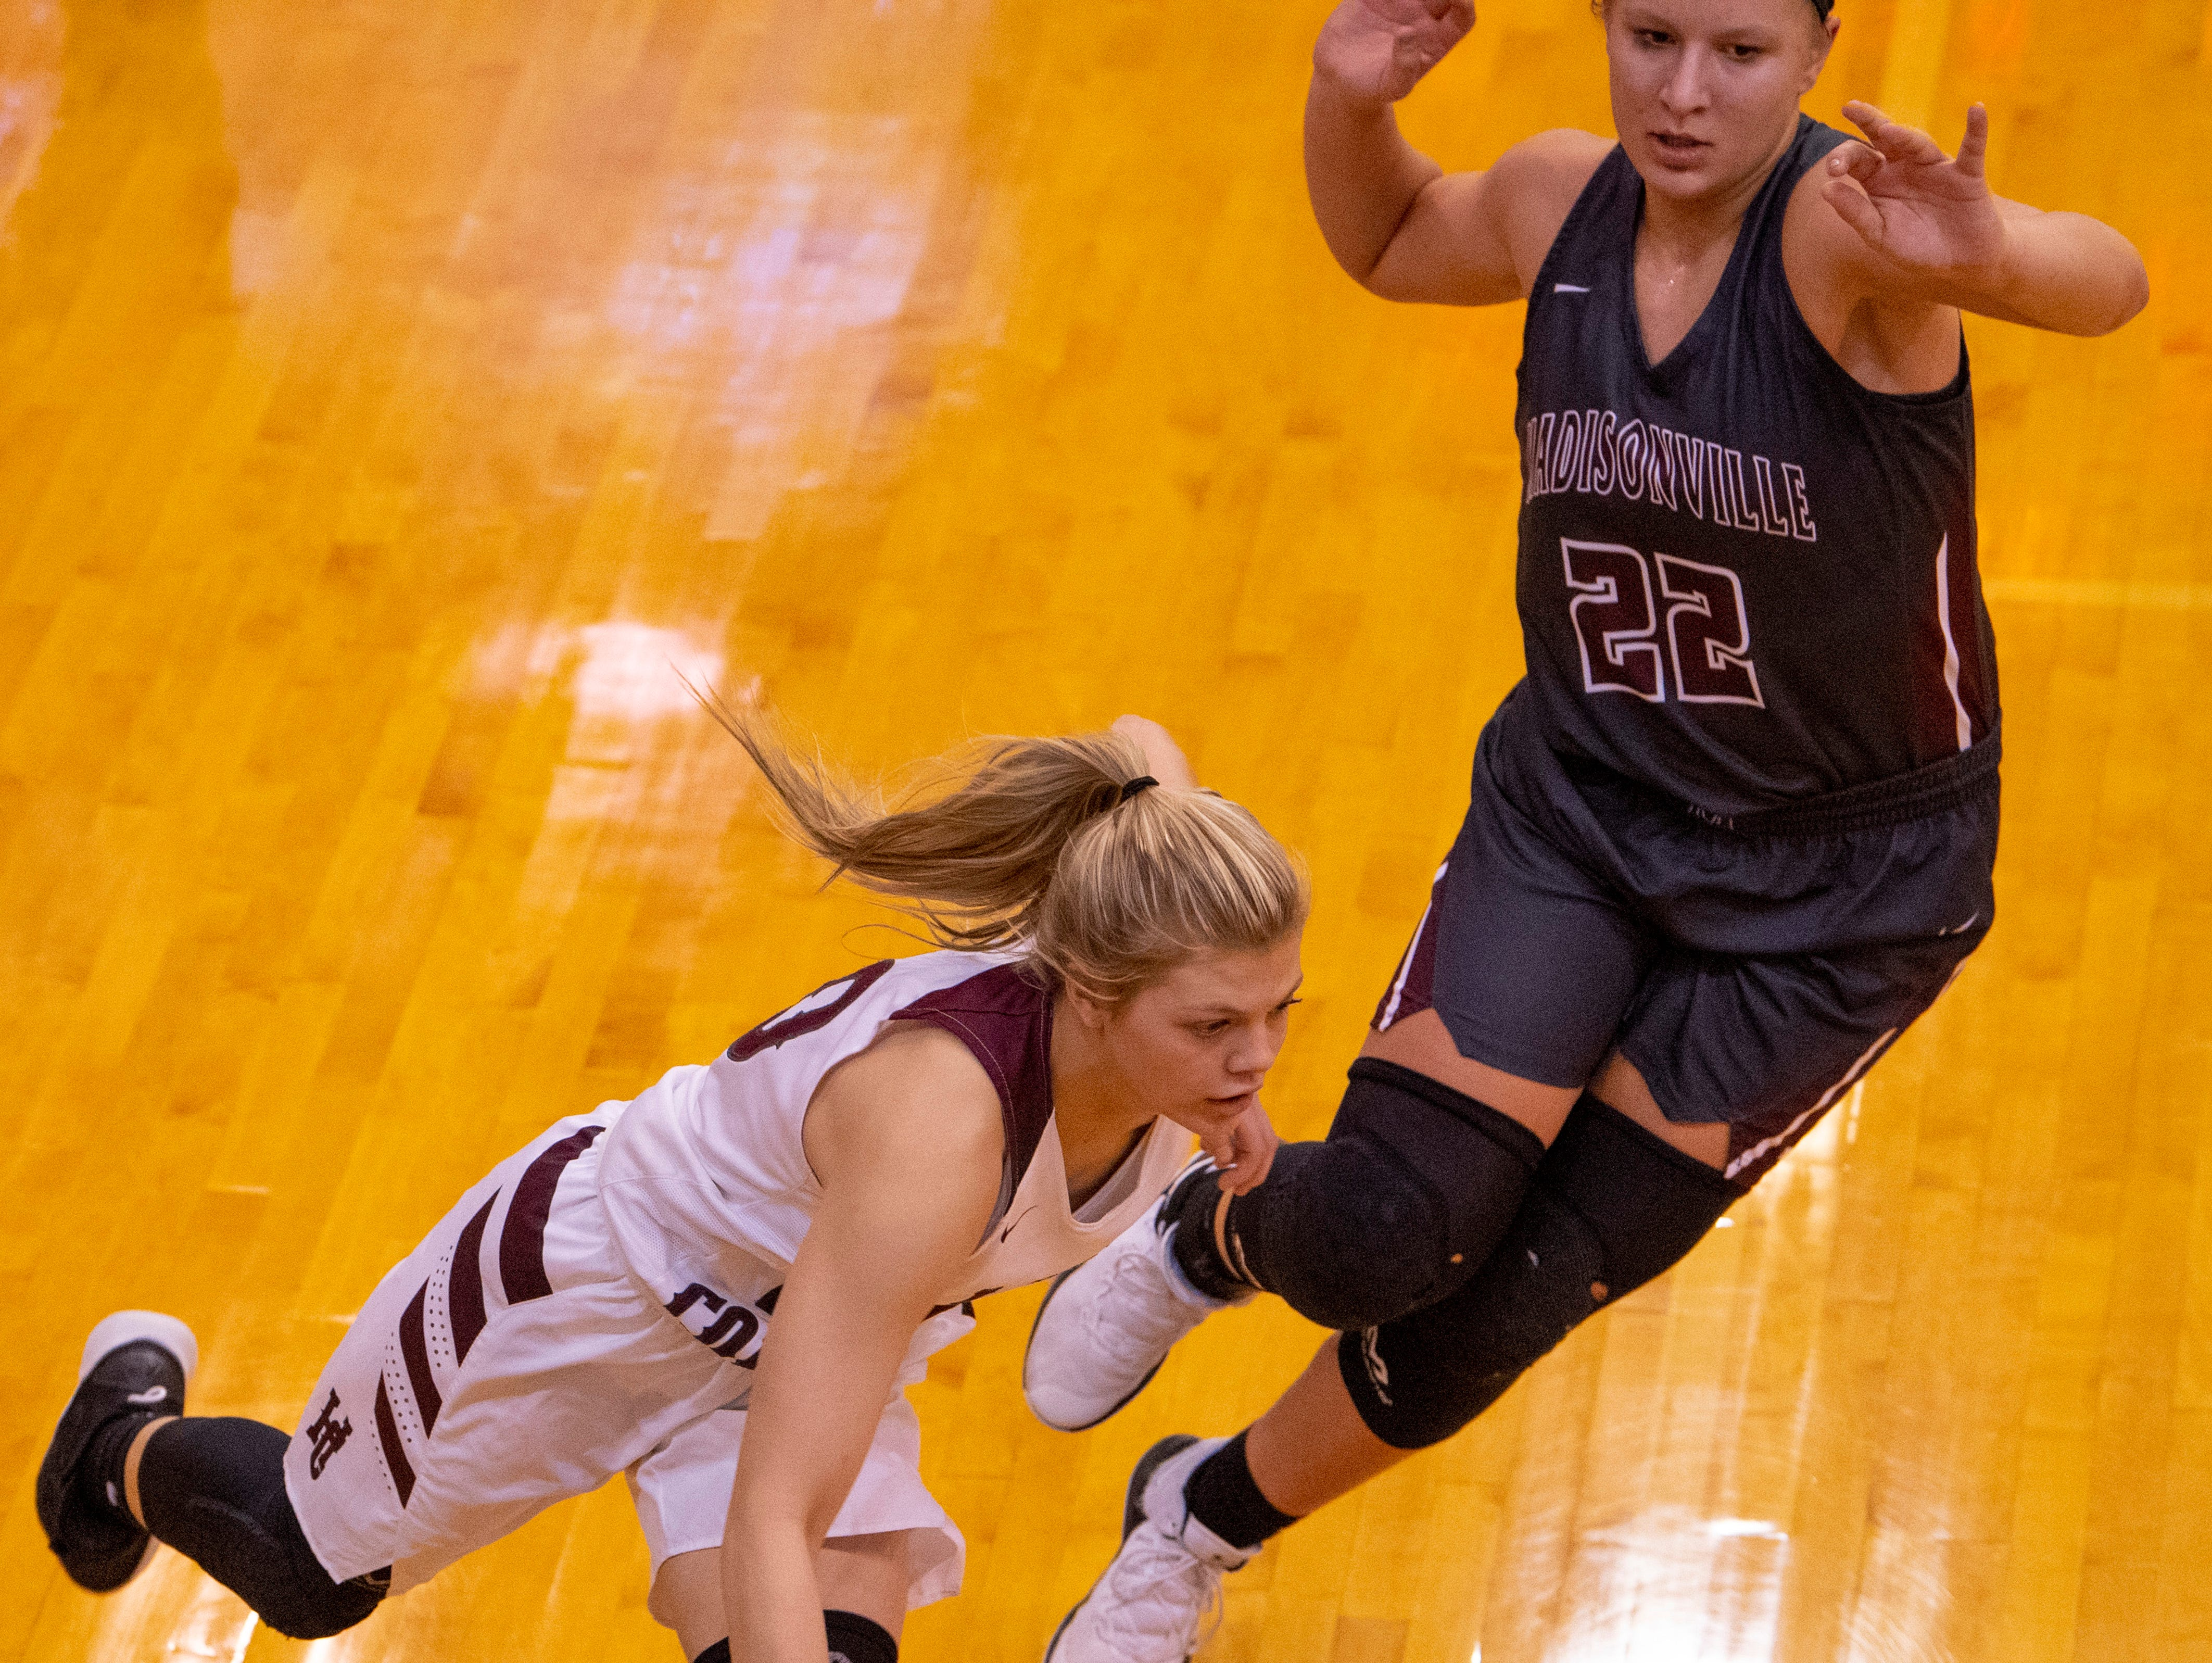 Henderson County's Kaytlan Kemp (20) drives past Madisonville's Camryn LaGrange (22) during the Girls Region Tournament semifinals at the Rocket Arena in Marion, Ky., Monday night.